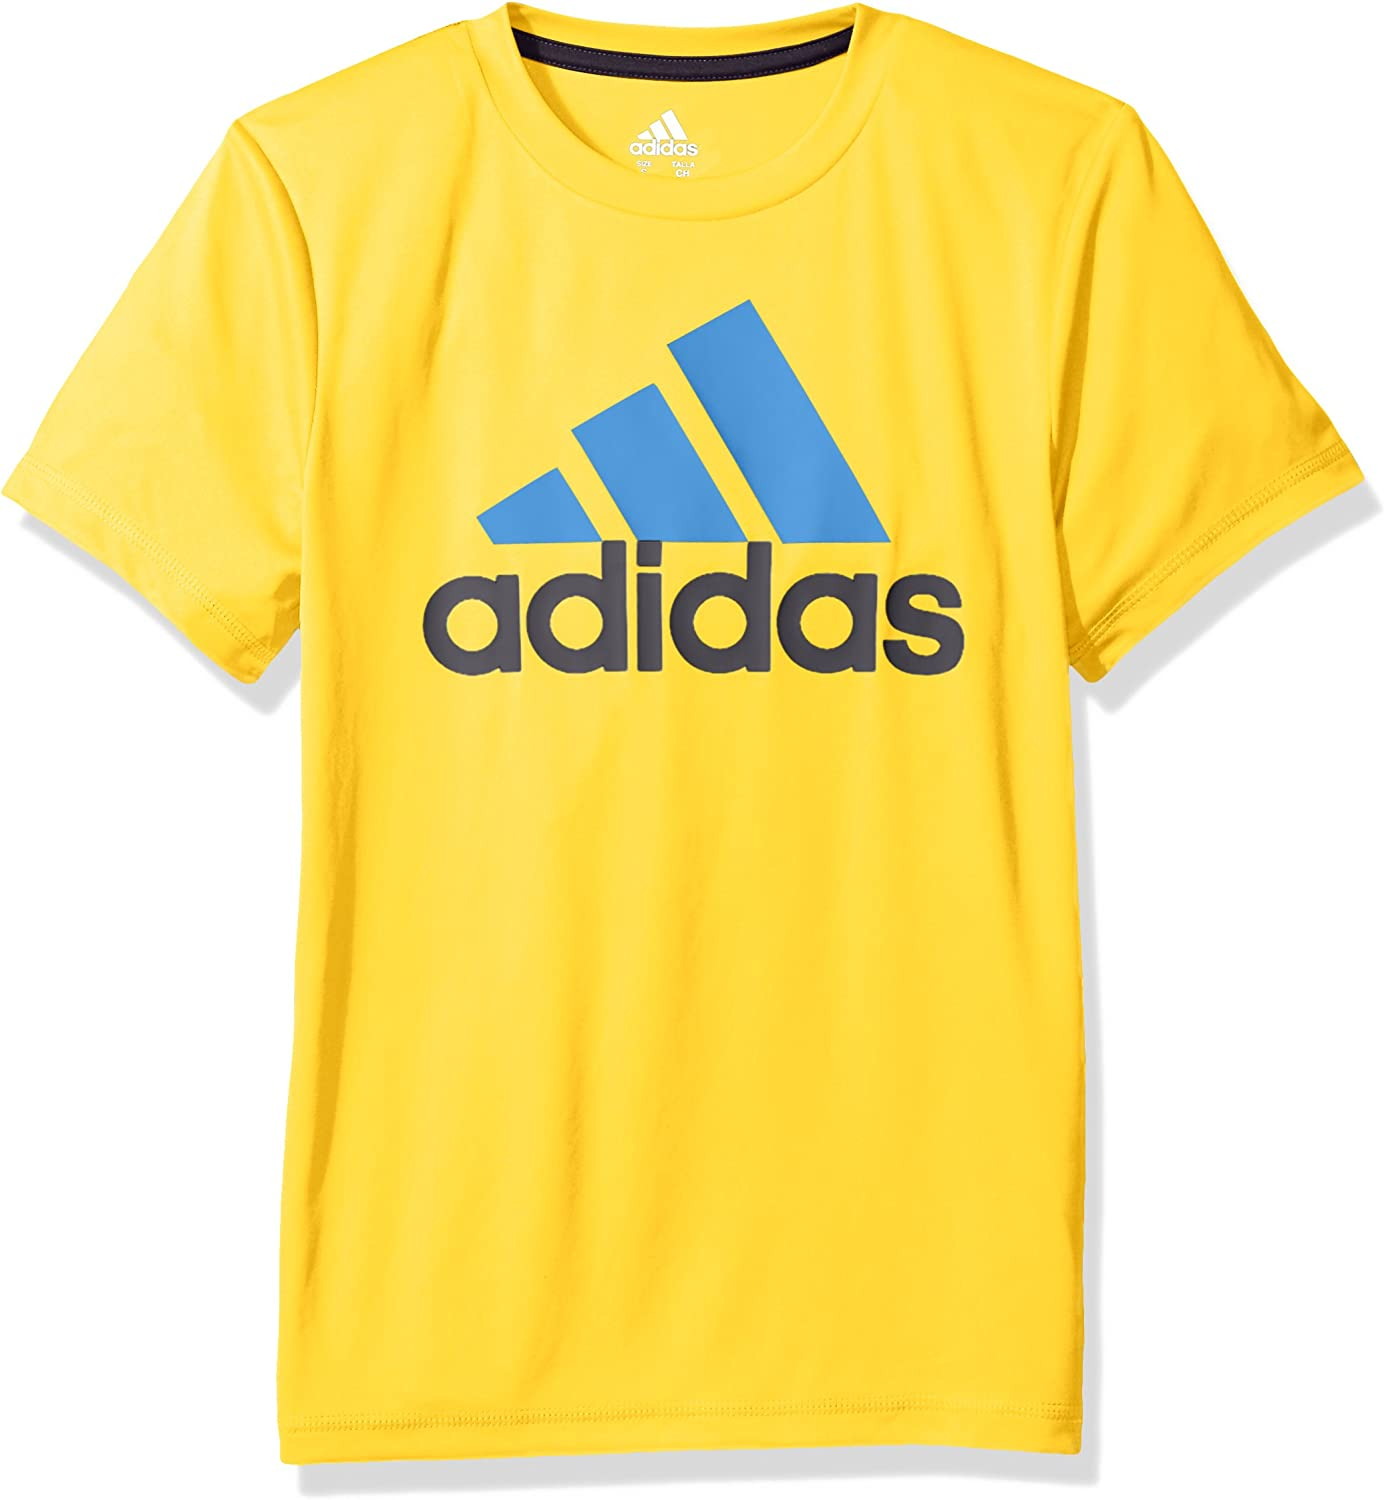 adidas Kids Boys Branding Graphic Tee Big Kids